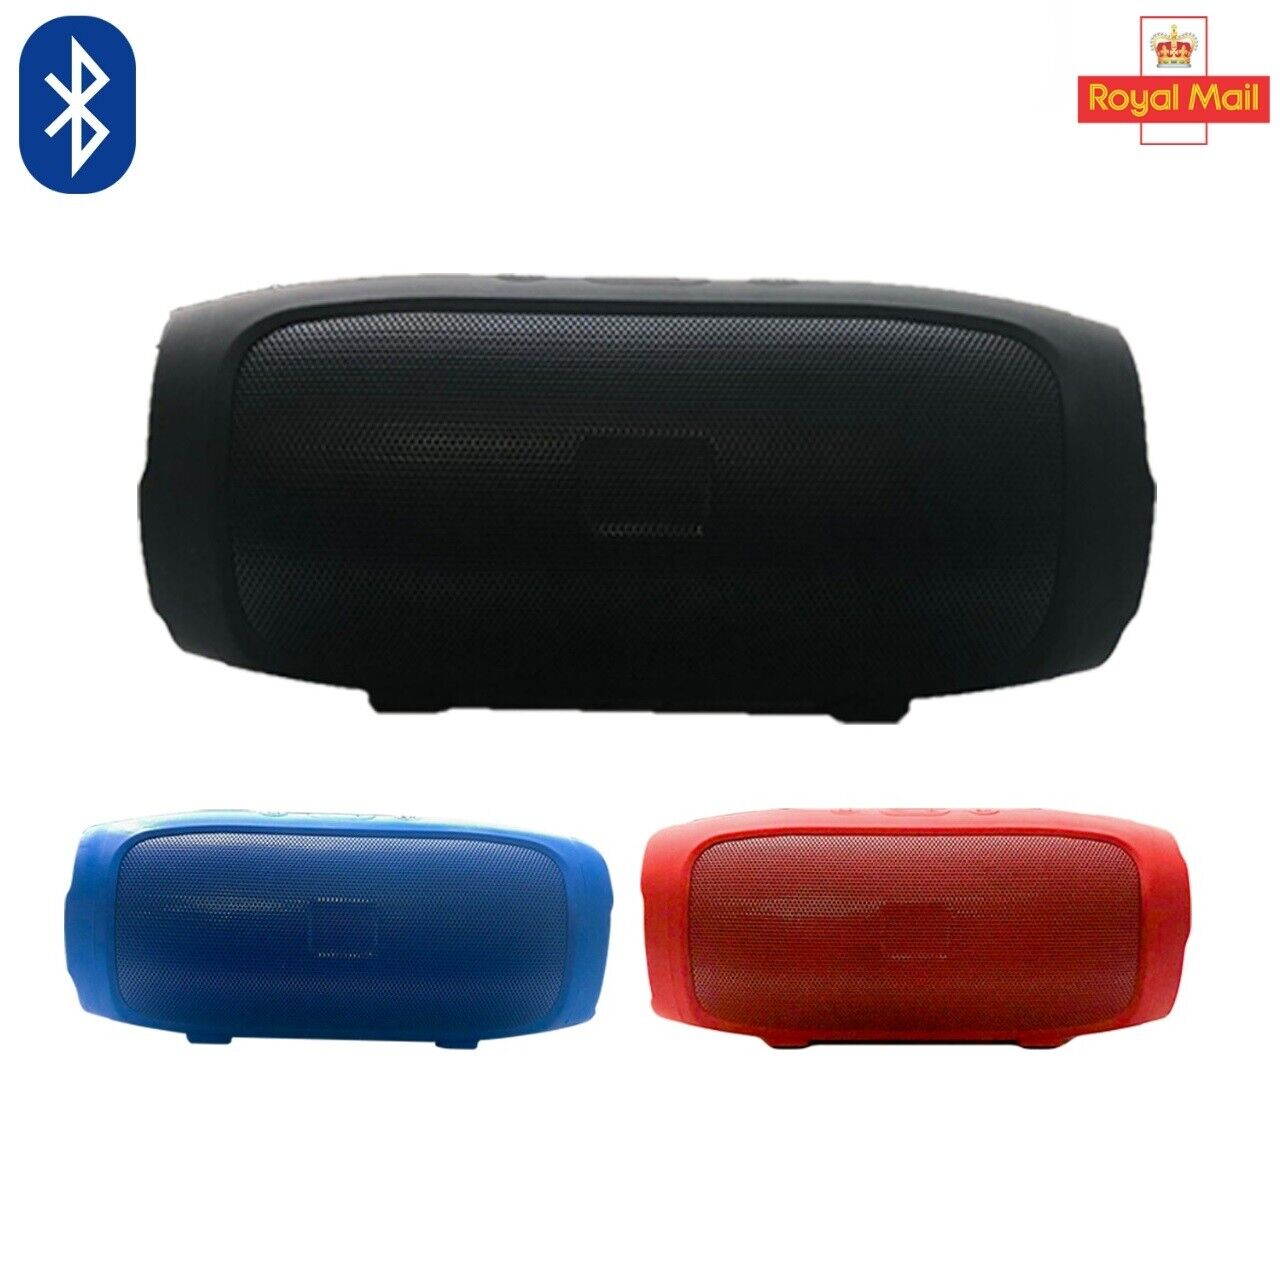 Bluetooth Speakers BASS+ (F200) Portable Wireless Speaker iPhone Samsung